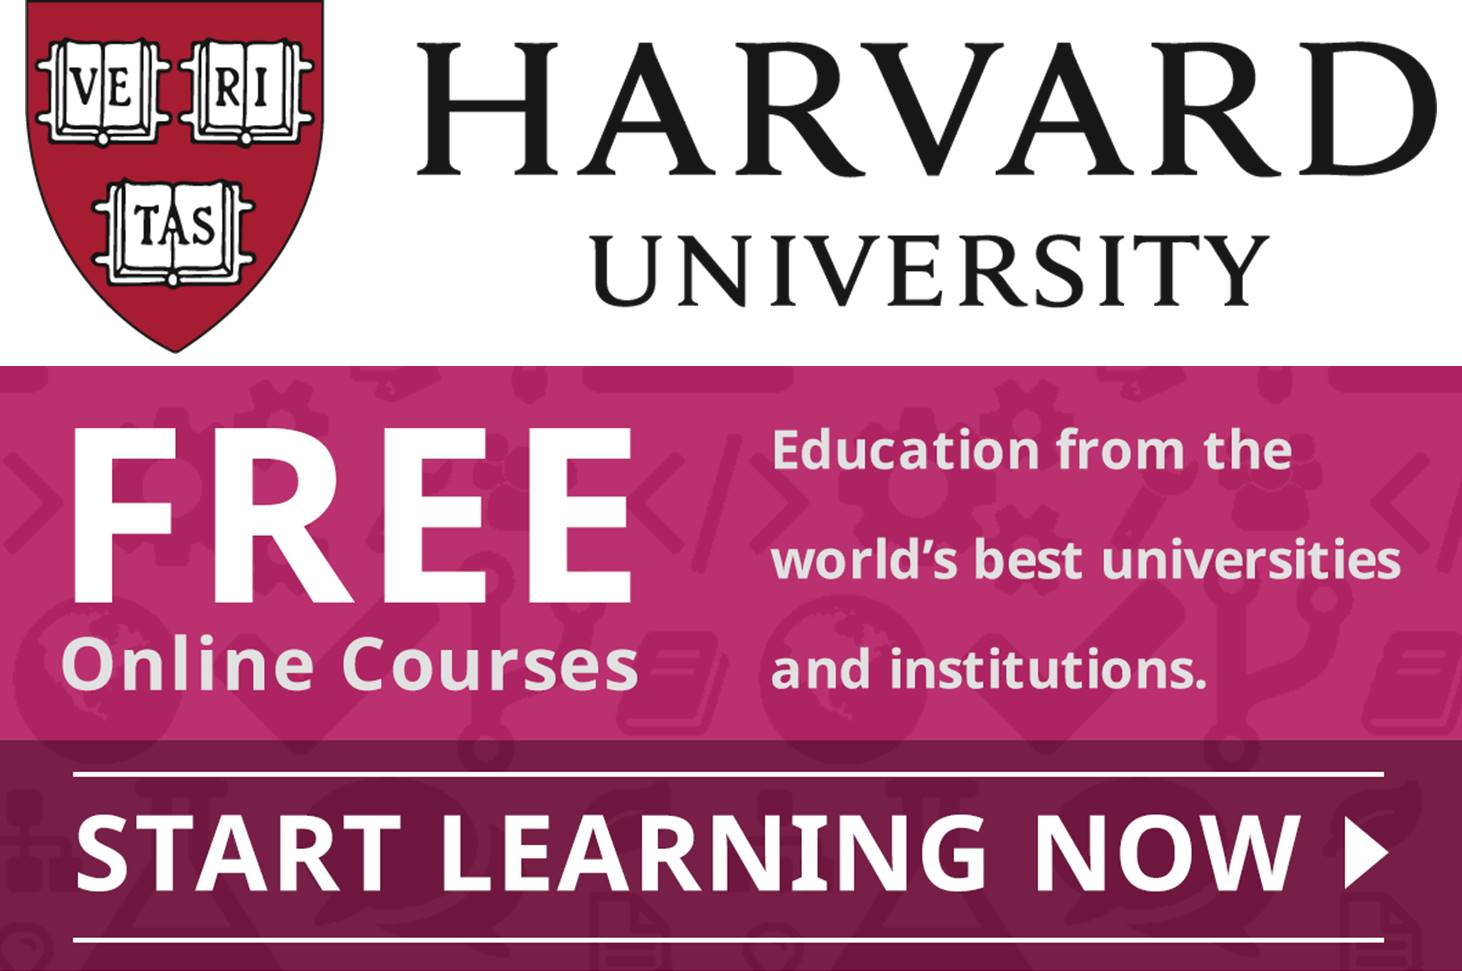 harvard-university-free-online-courses.jpg